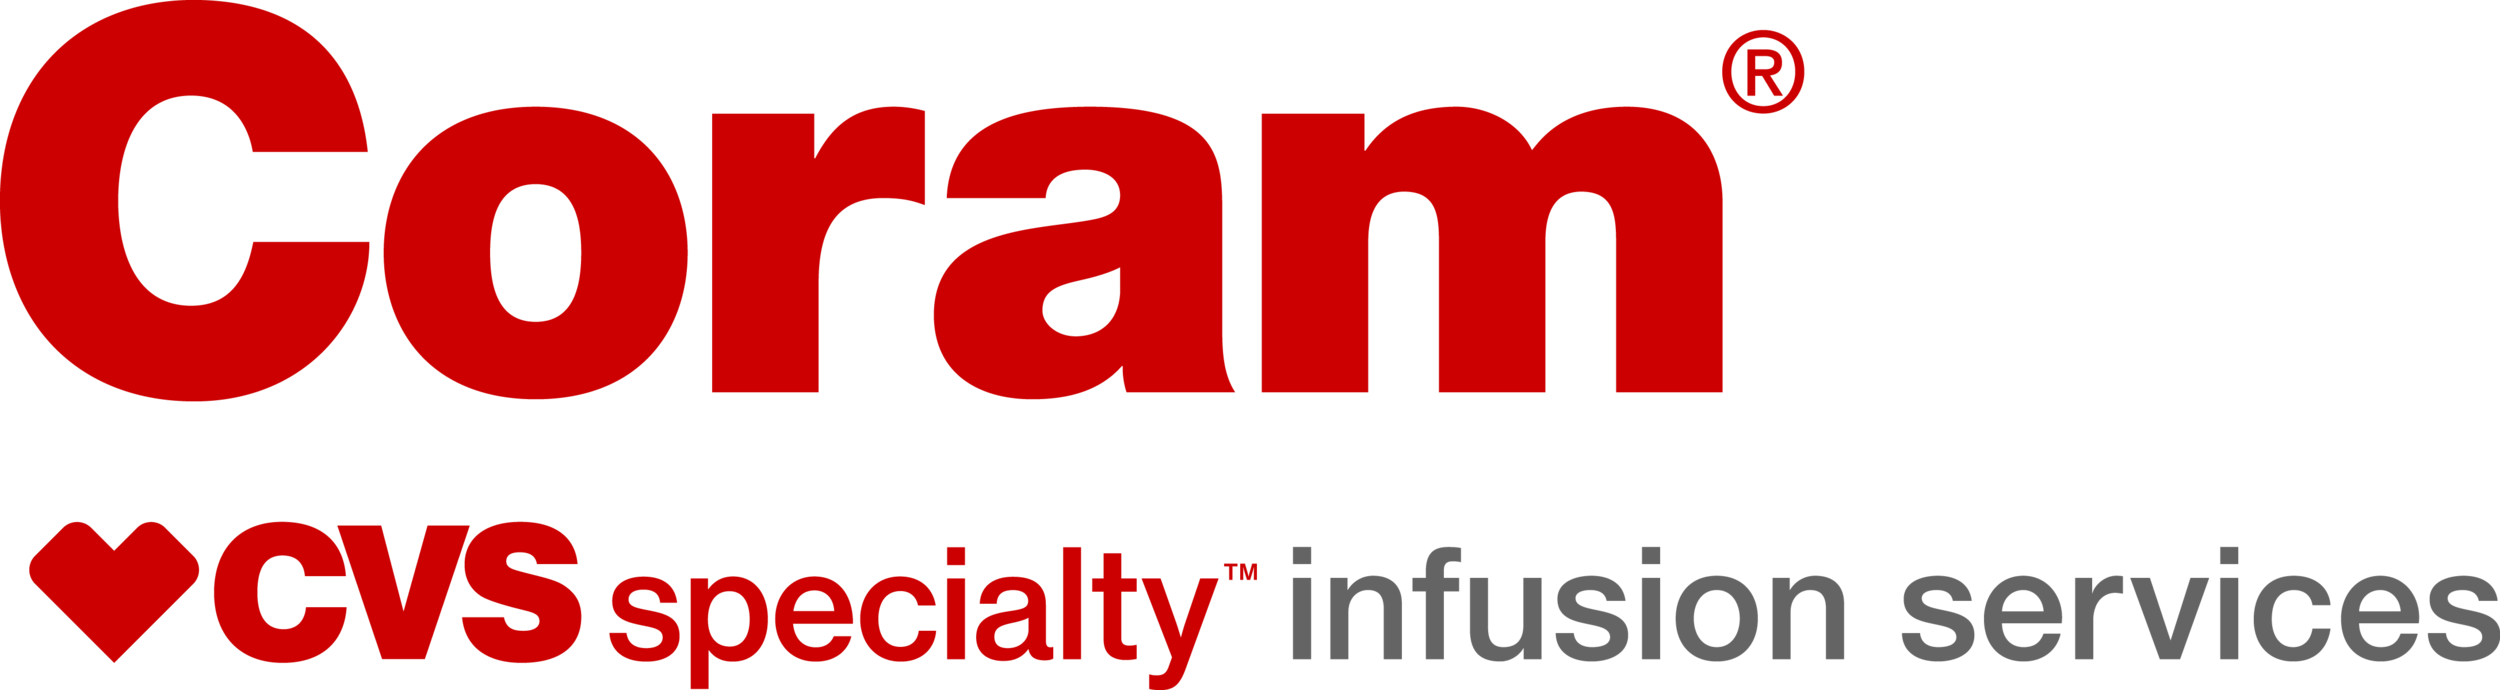 Coram_Logo_with_Endorser_reg_rgb_redgry.png